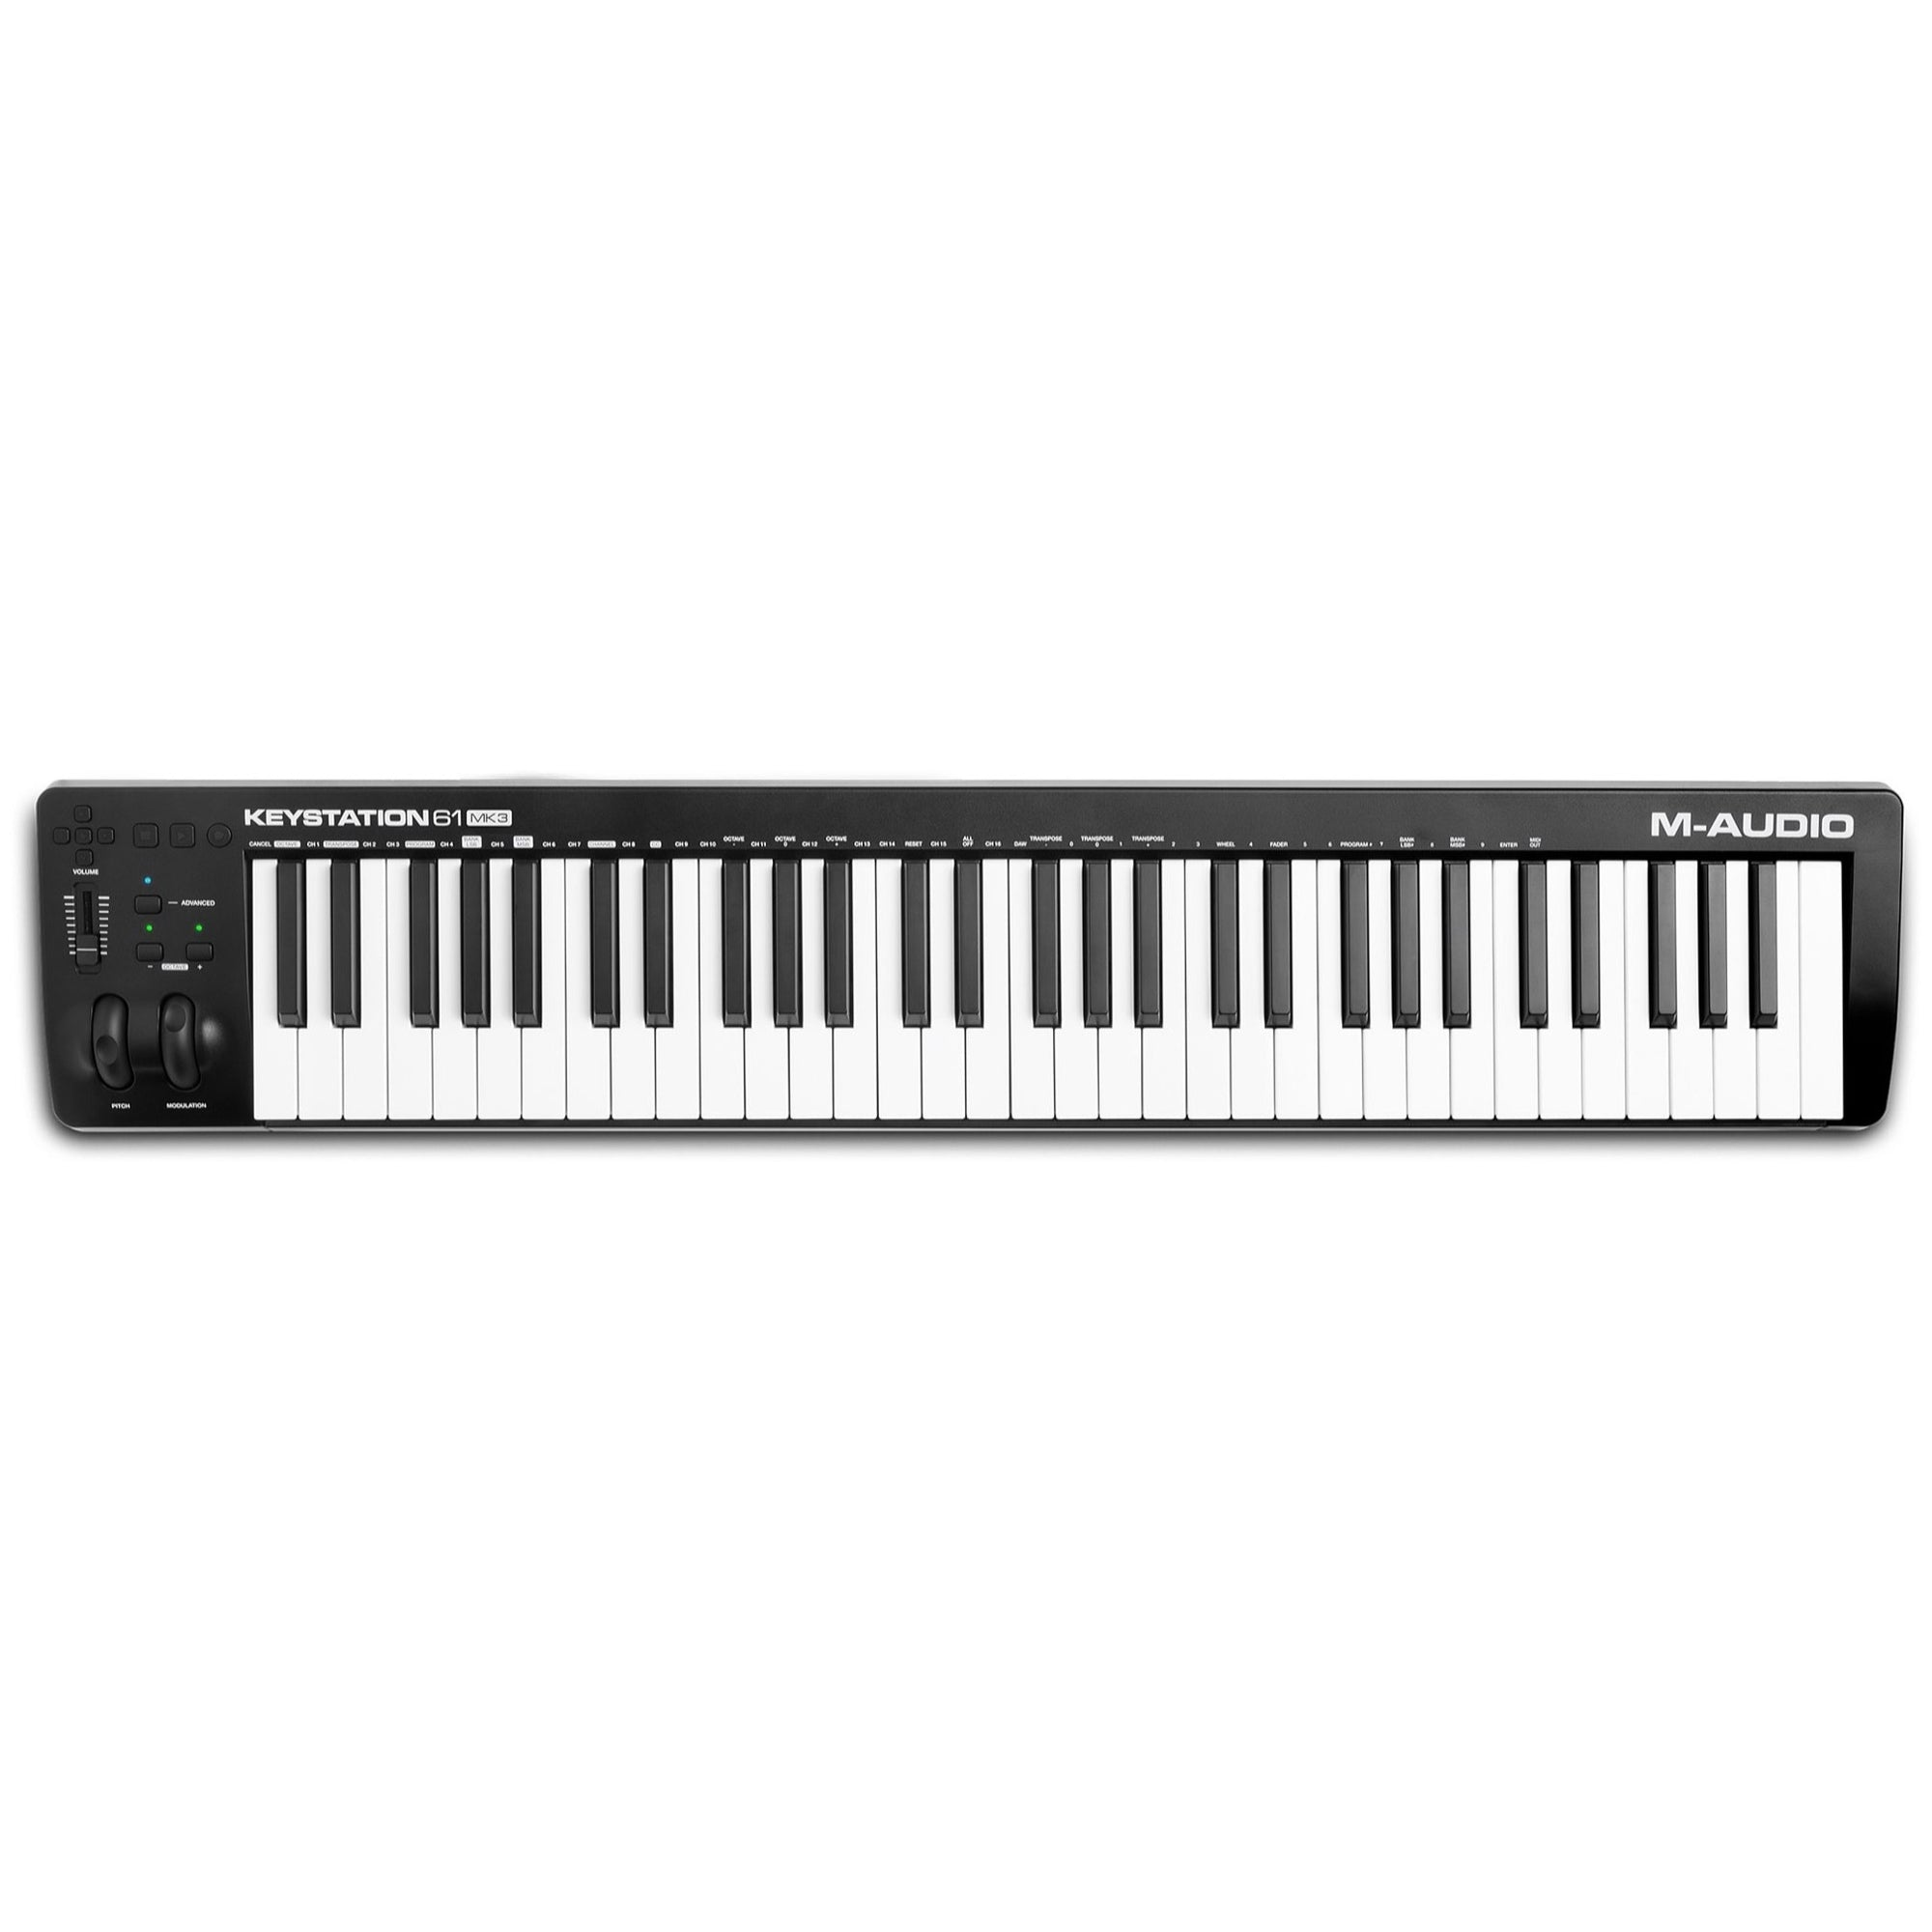 M-Audio Keystation 61 MK3 USB MIDI Controller, 61-Key